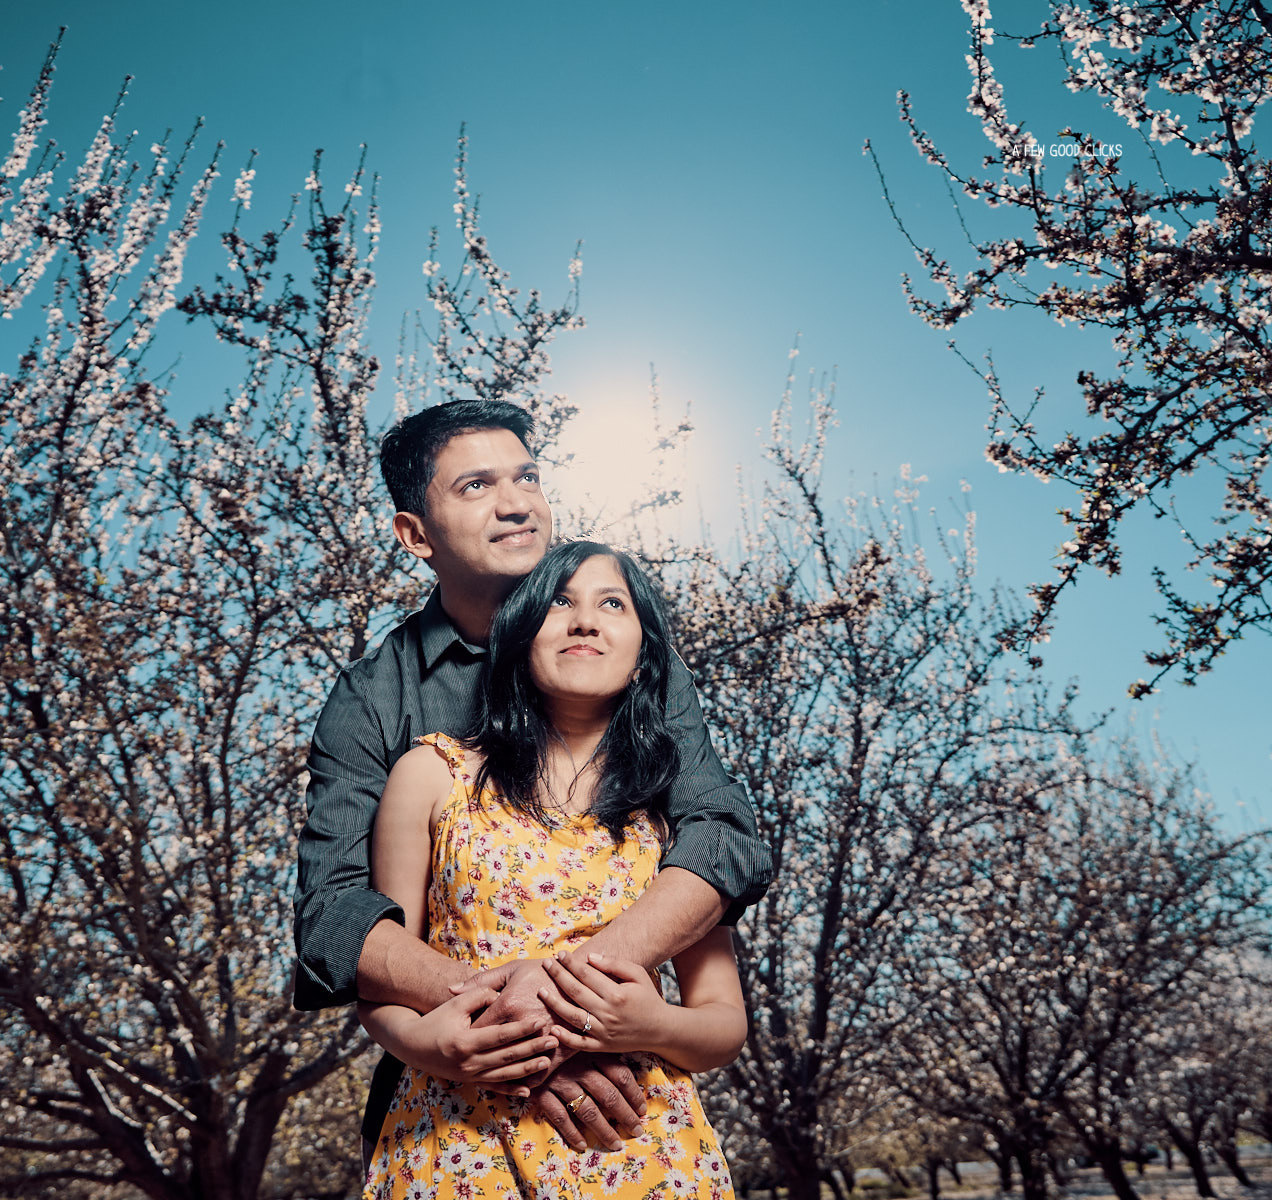 engagement-photoshoot-almond-farms-bay-area-by-afewgoodclicks 113.jpg